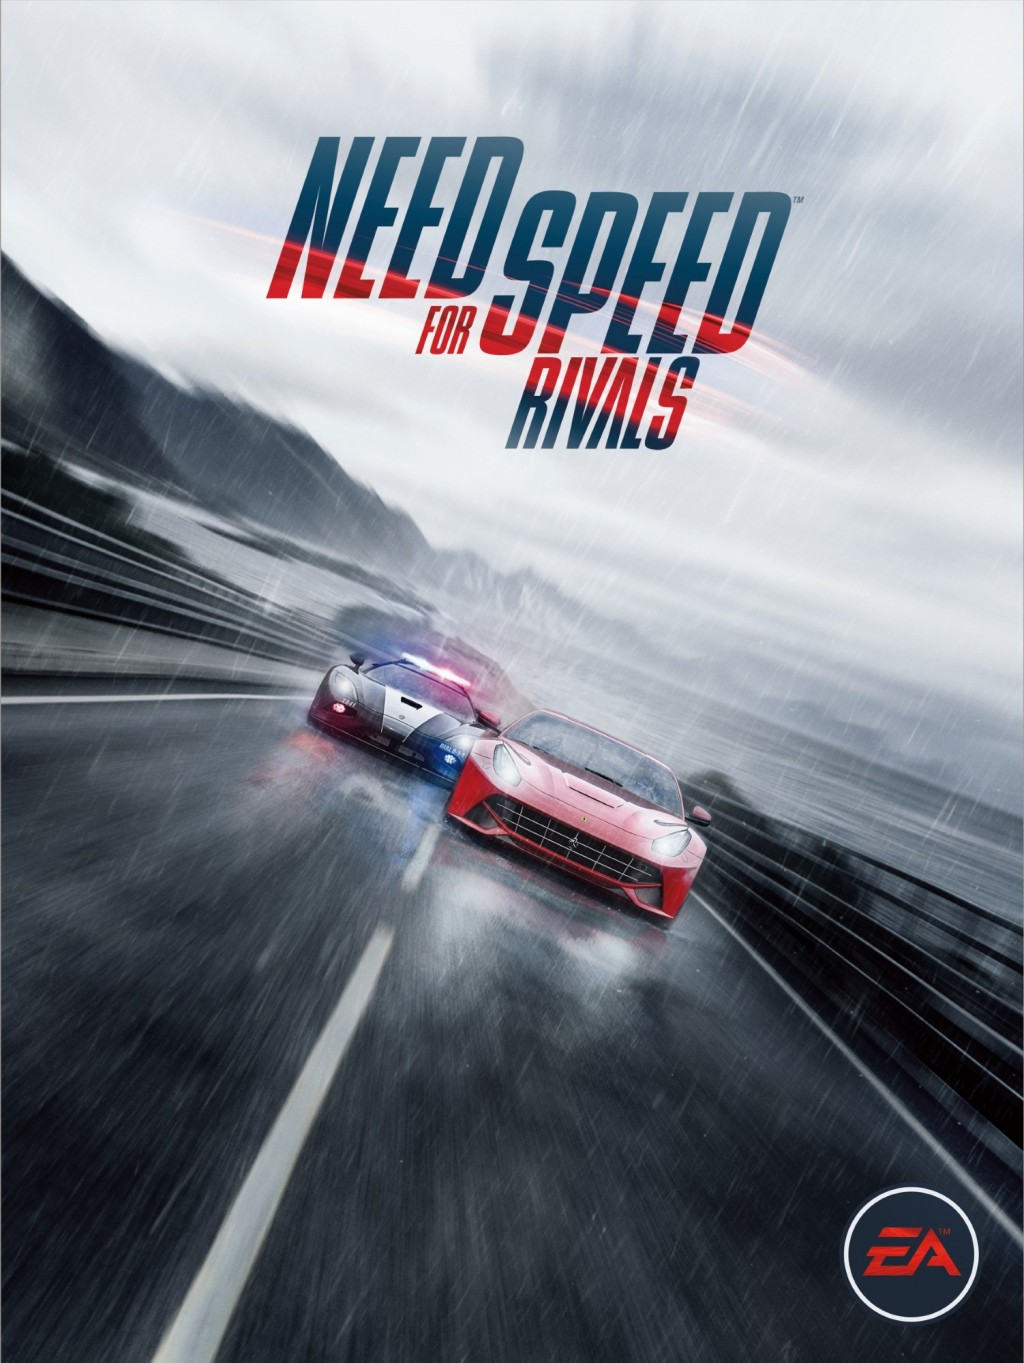 need-for-speed-rivals-screenshots_100428209_l